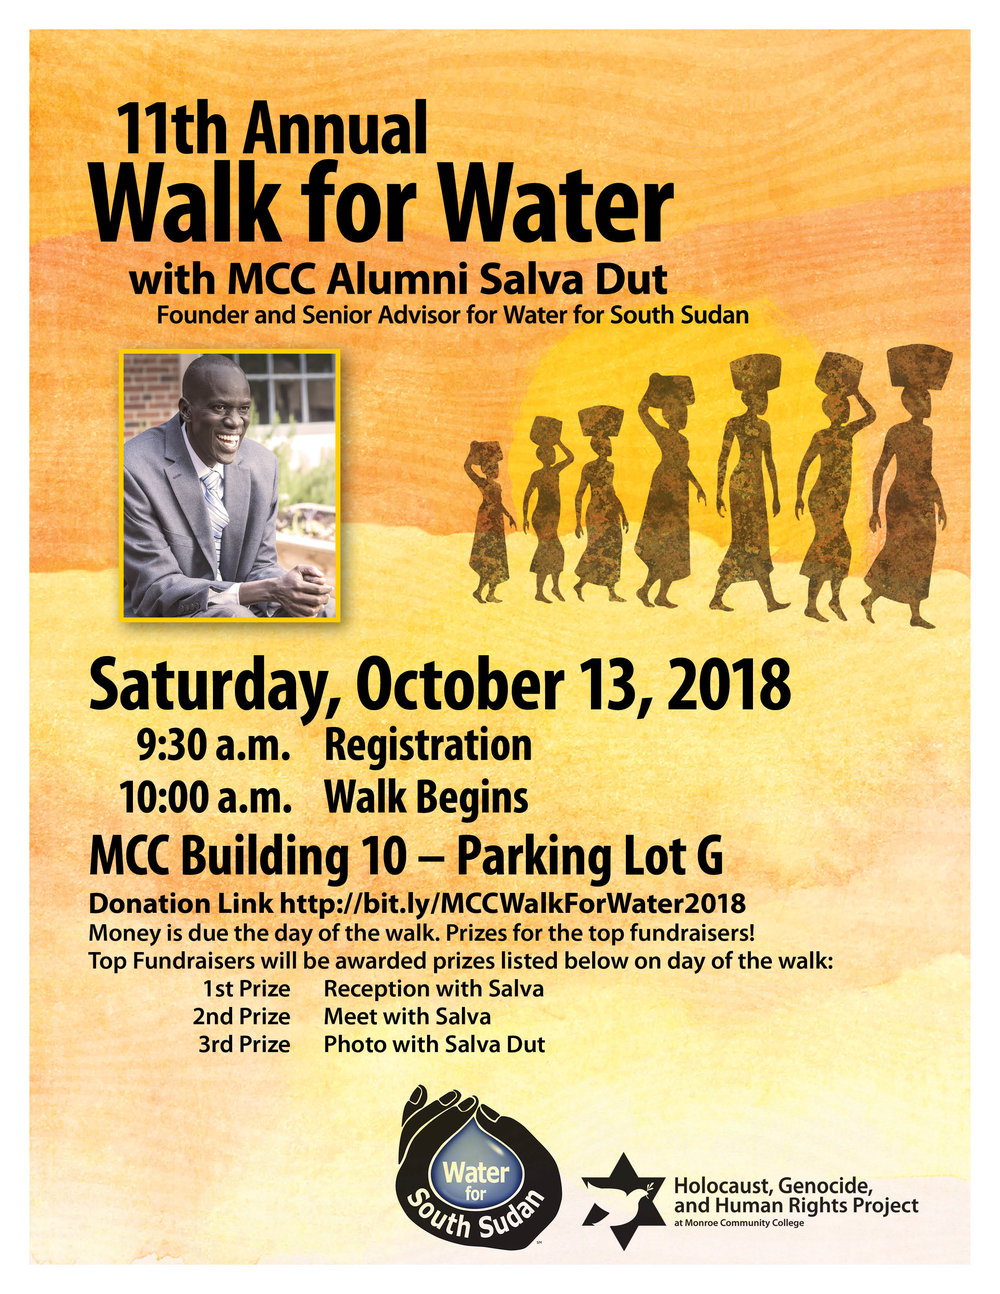 Walk for Water Poster.jpg